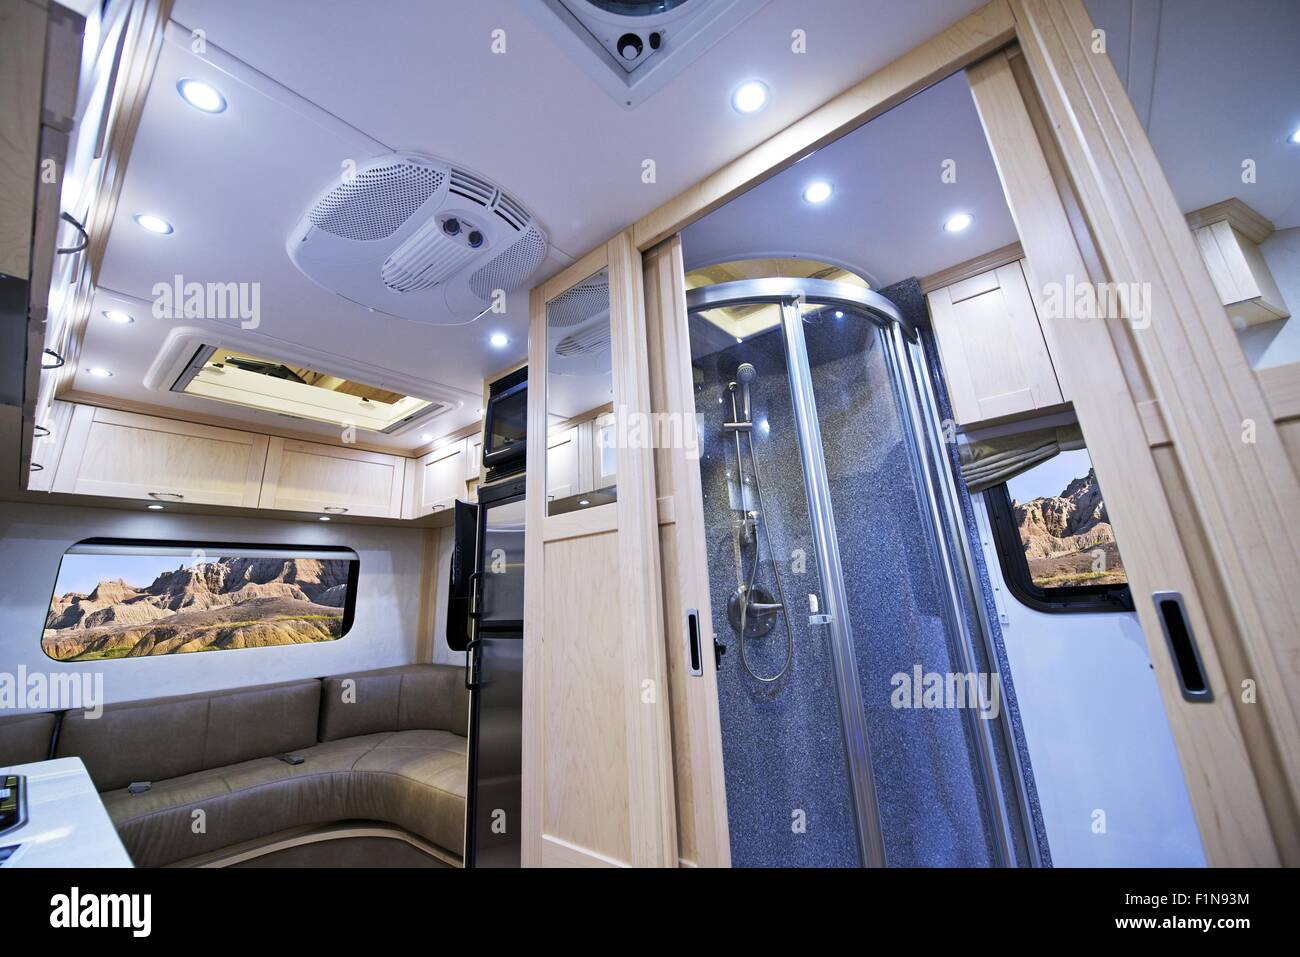 Motorhome Interior Small Bathroom With Shower And Sleeping Area